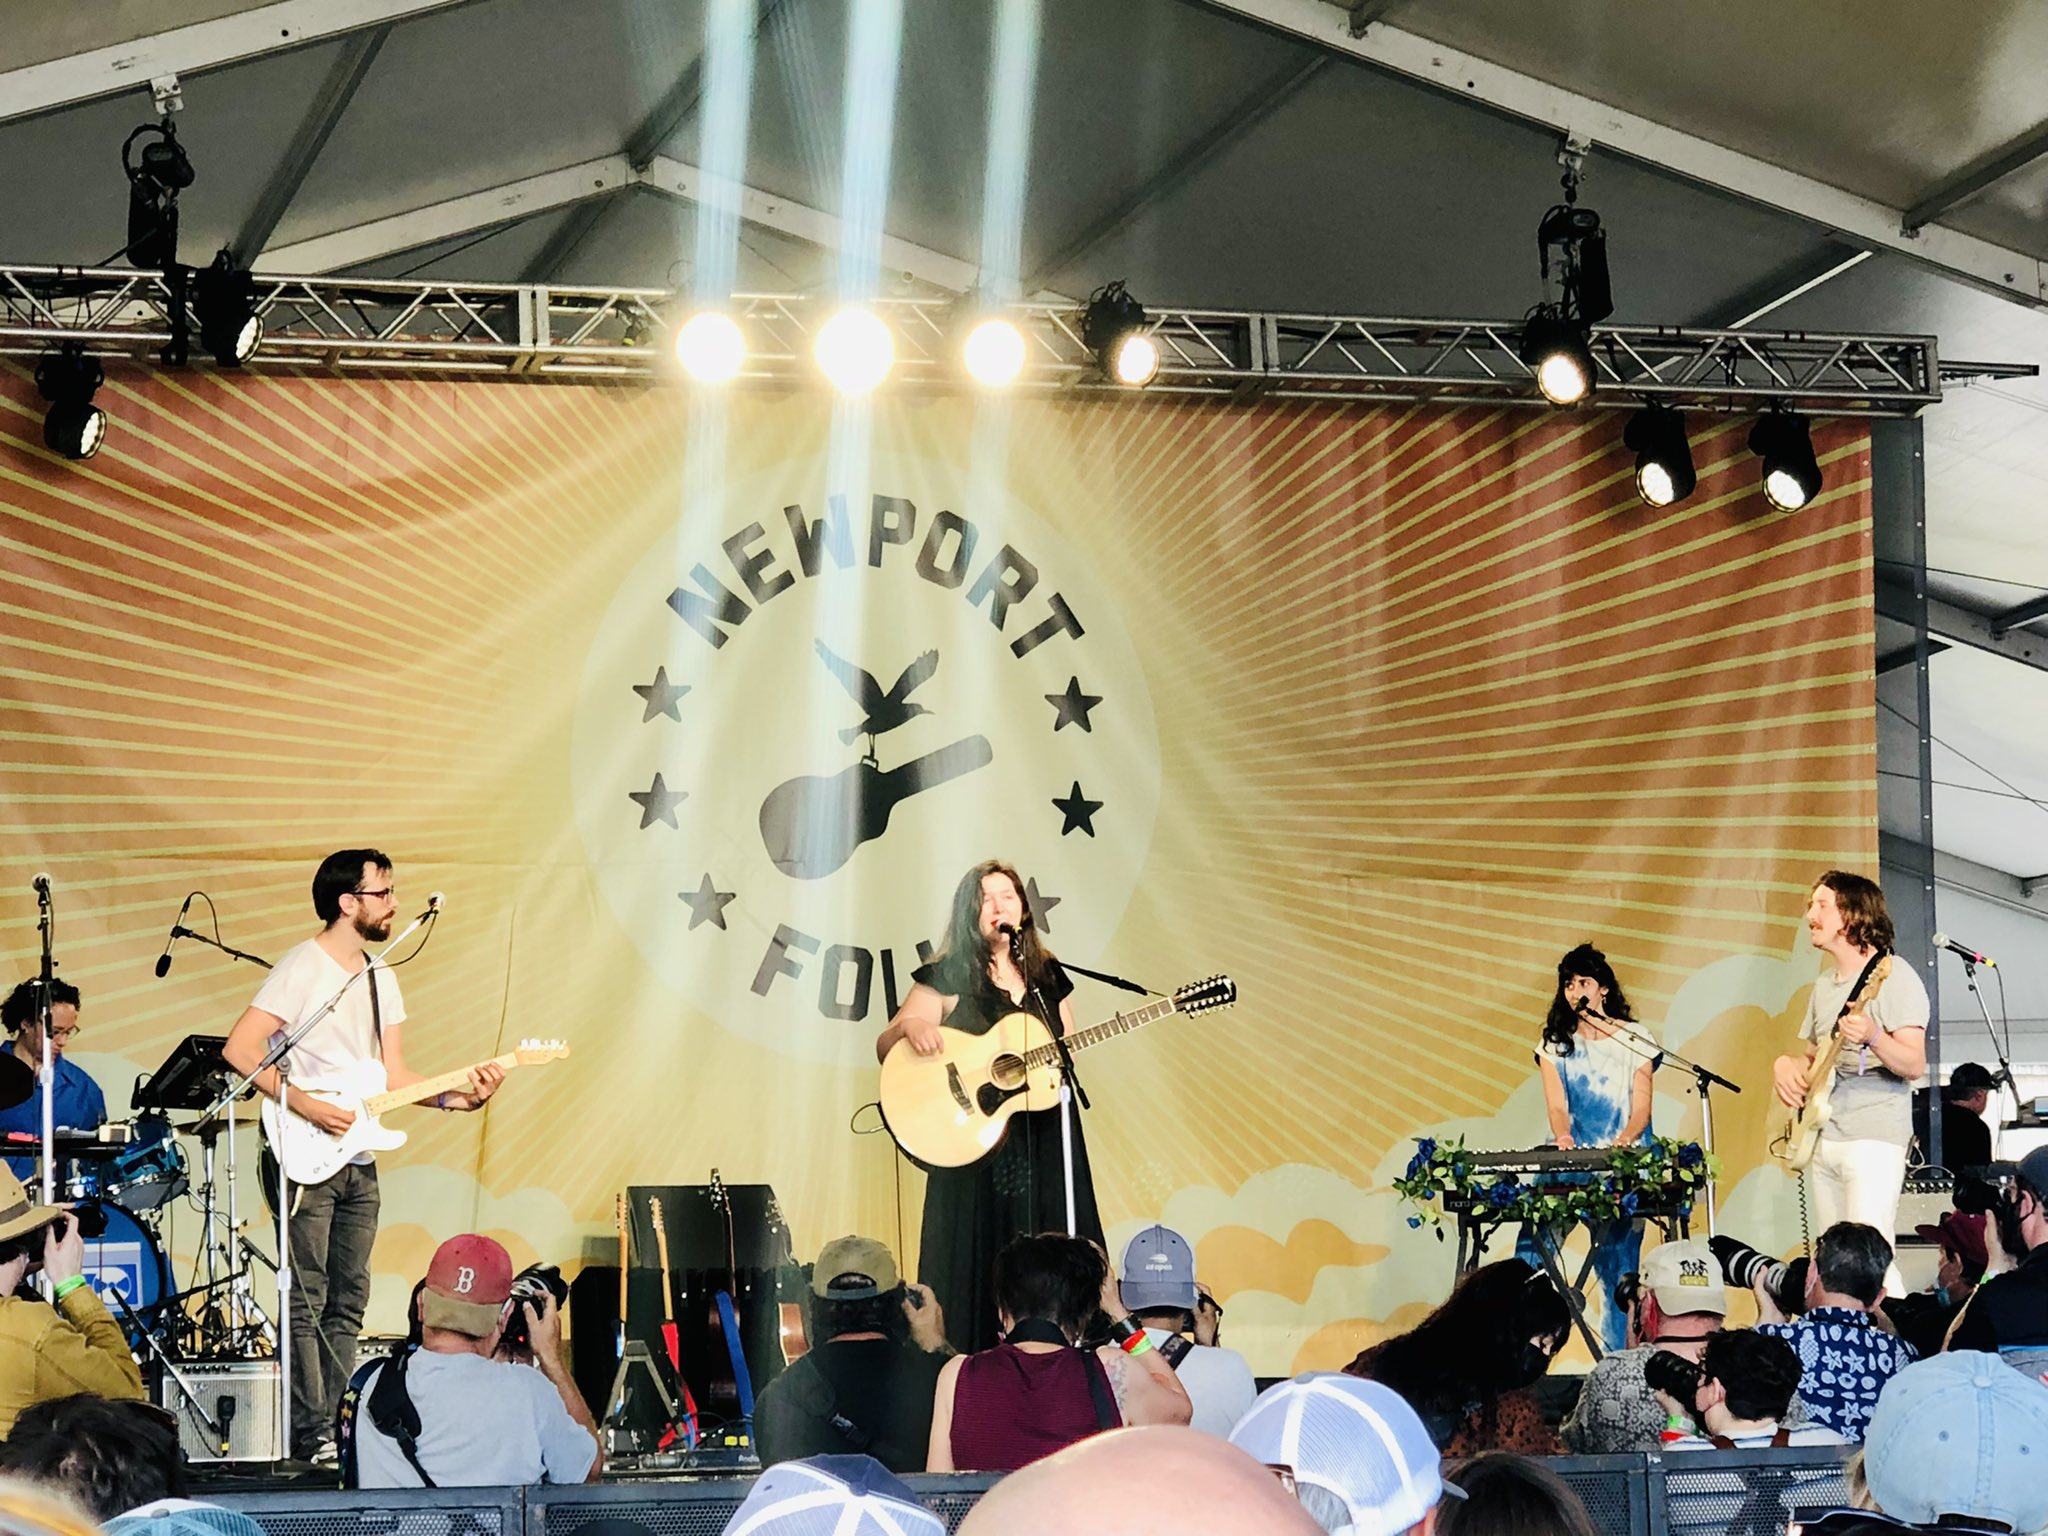 Musicians on stage at the Newport Folk Festival